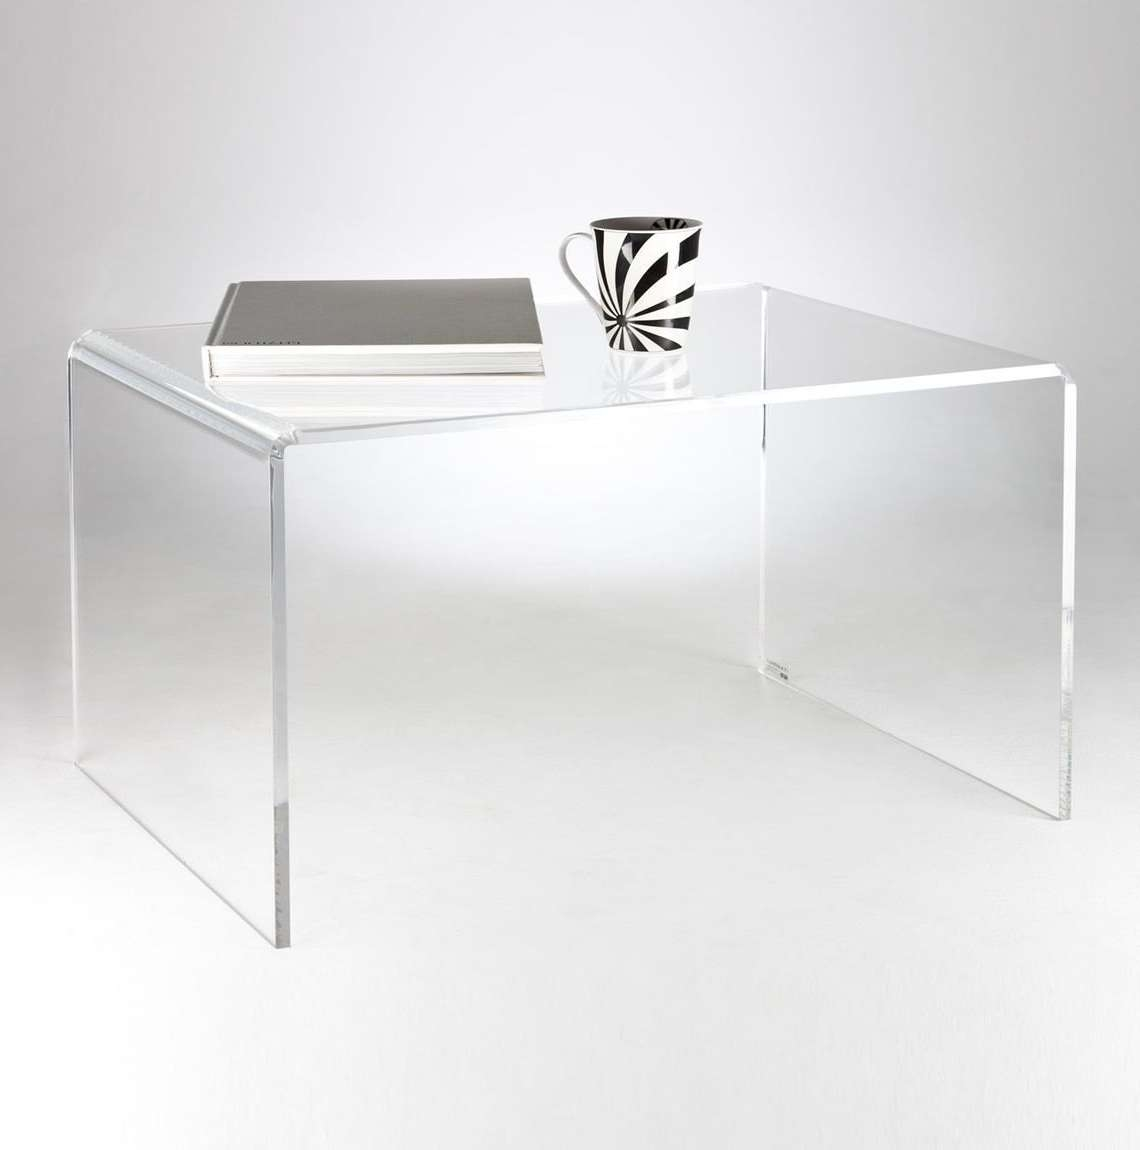 Acrylic Tables – Modern Coffee, Side & Console Tables With Regard To Most Current Perspex Coffee Table (Gallery 8 of 20)